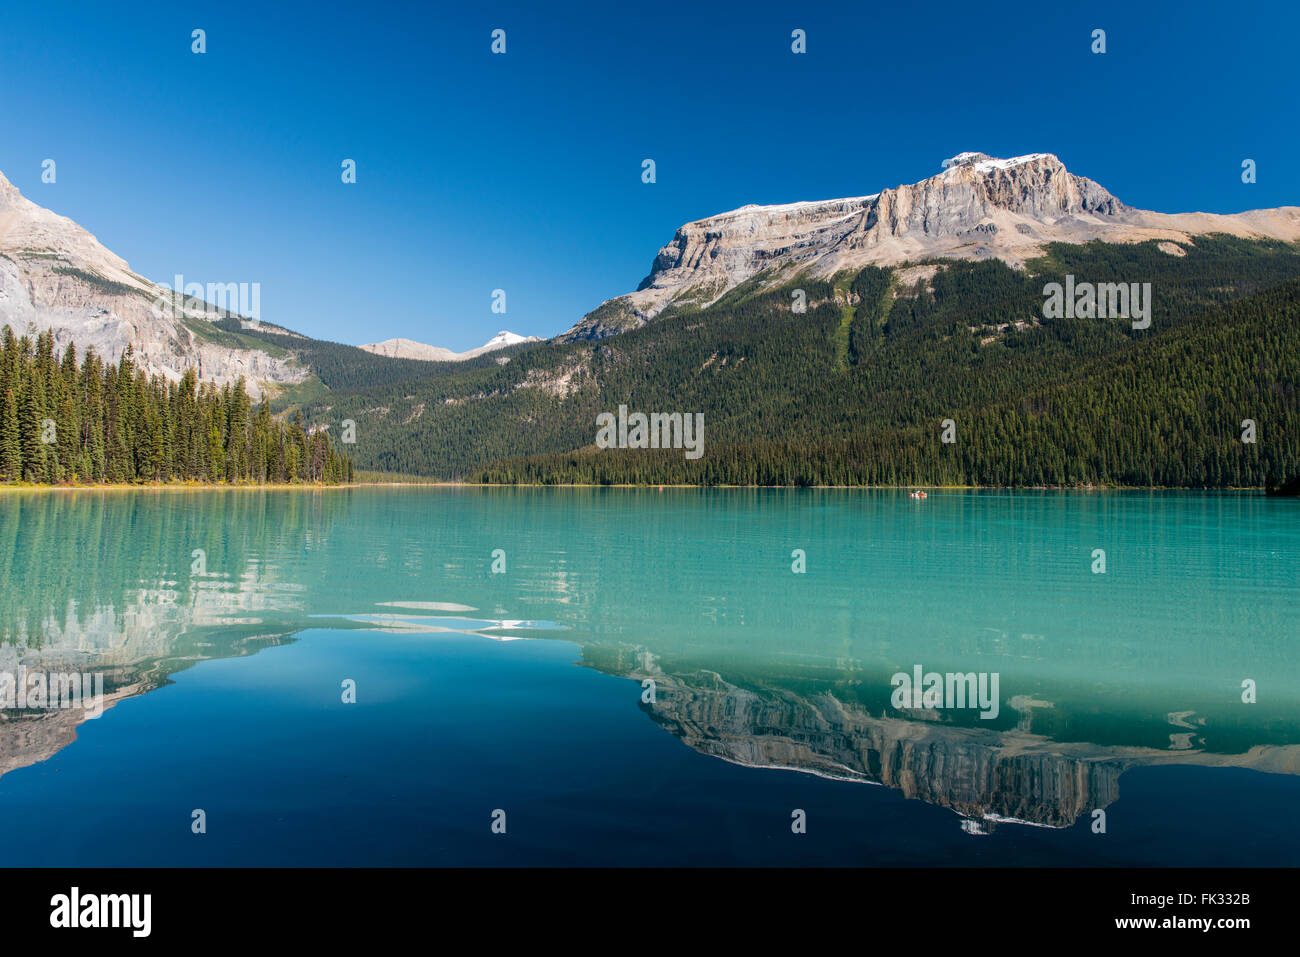 Emerald Lake, Yoho National Park, Canadian Rockies, British Columbia Province, Canada - Stock Image